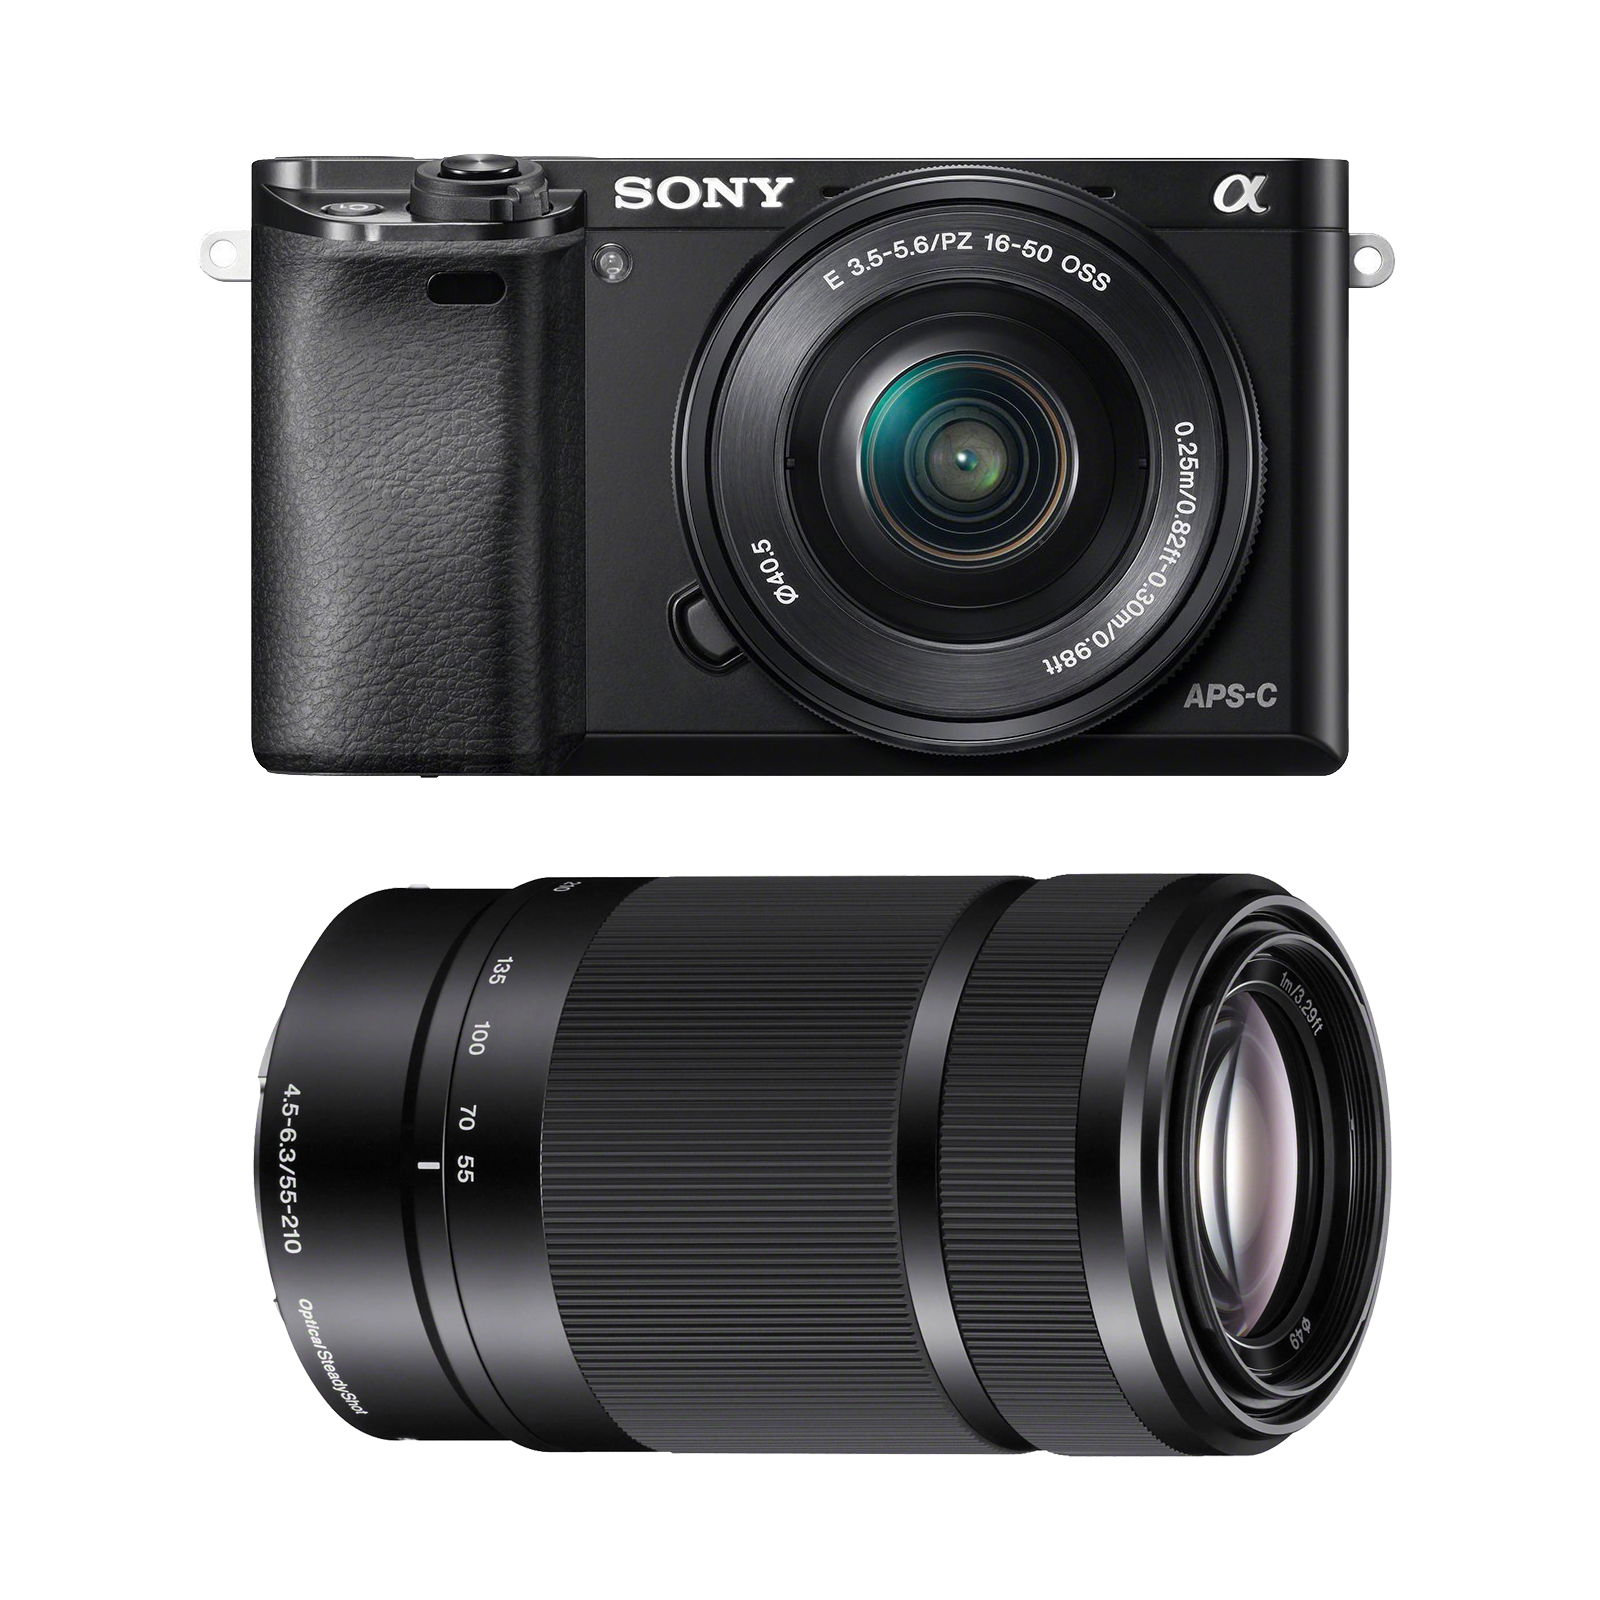 Sony Alpha A6000 Wi-Fi Digital Camera & 16-50mm Lens with E-Mount 55-210mm f/4.5-6.3 OSS Zoom Lens